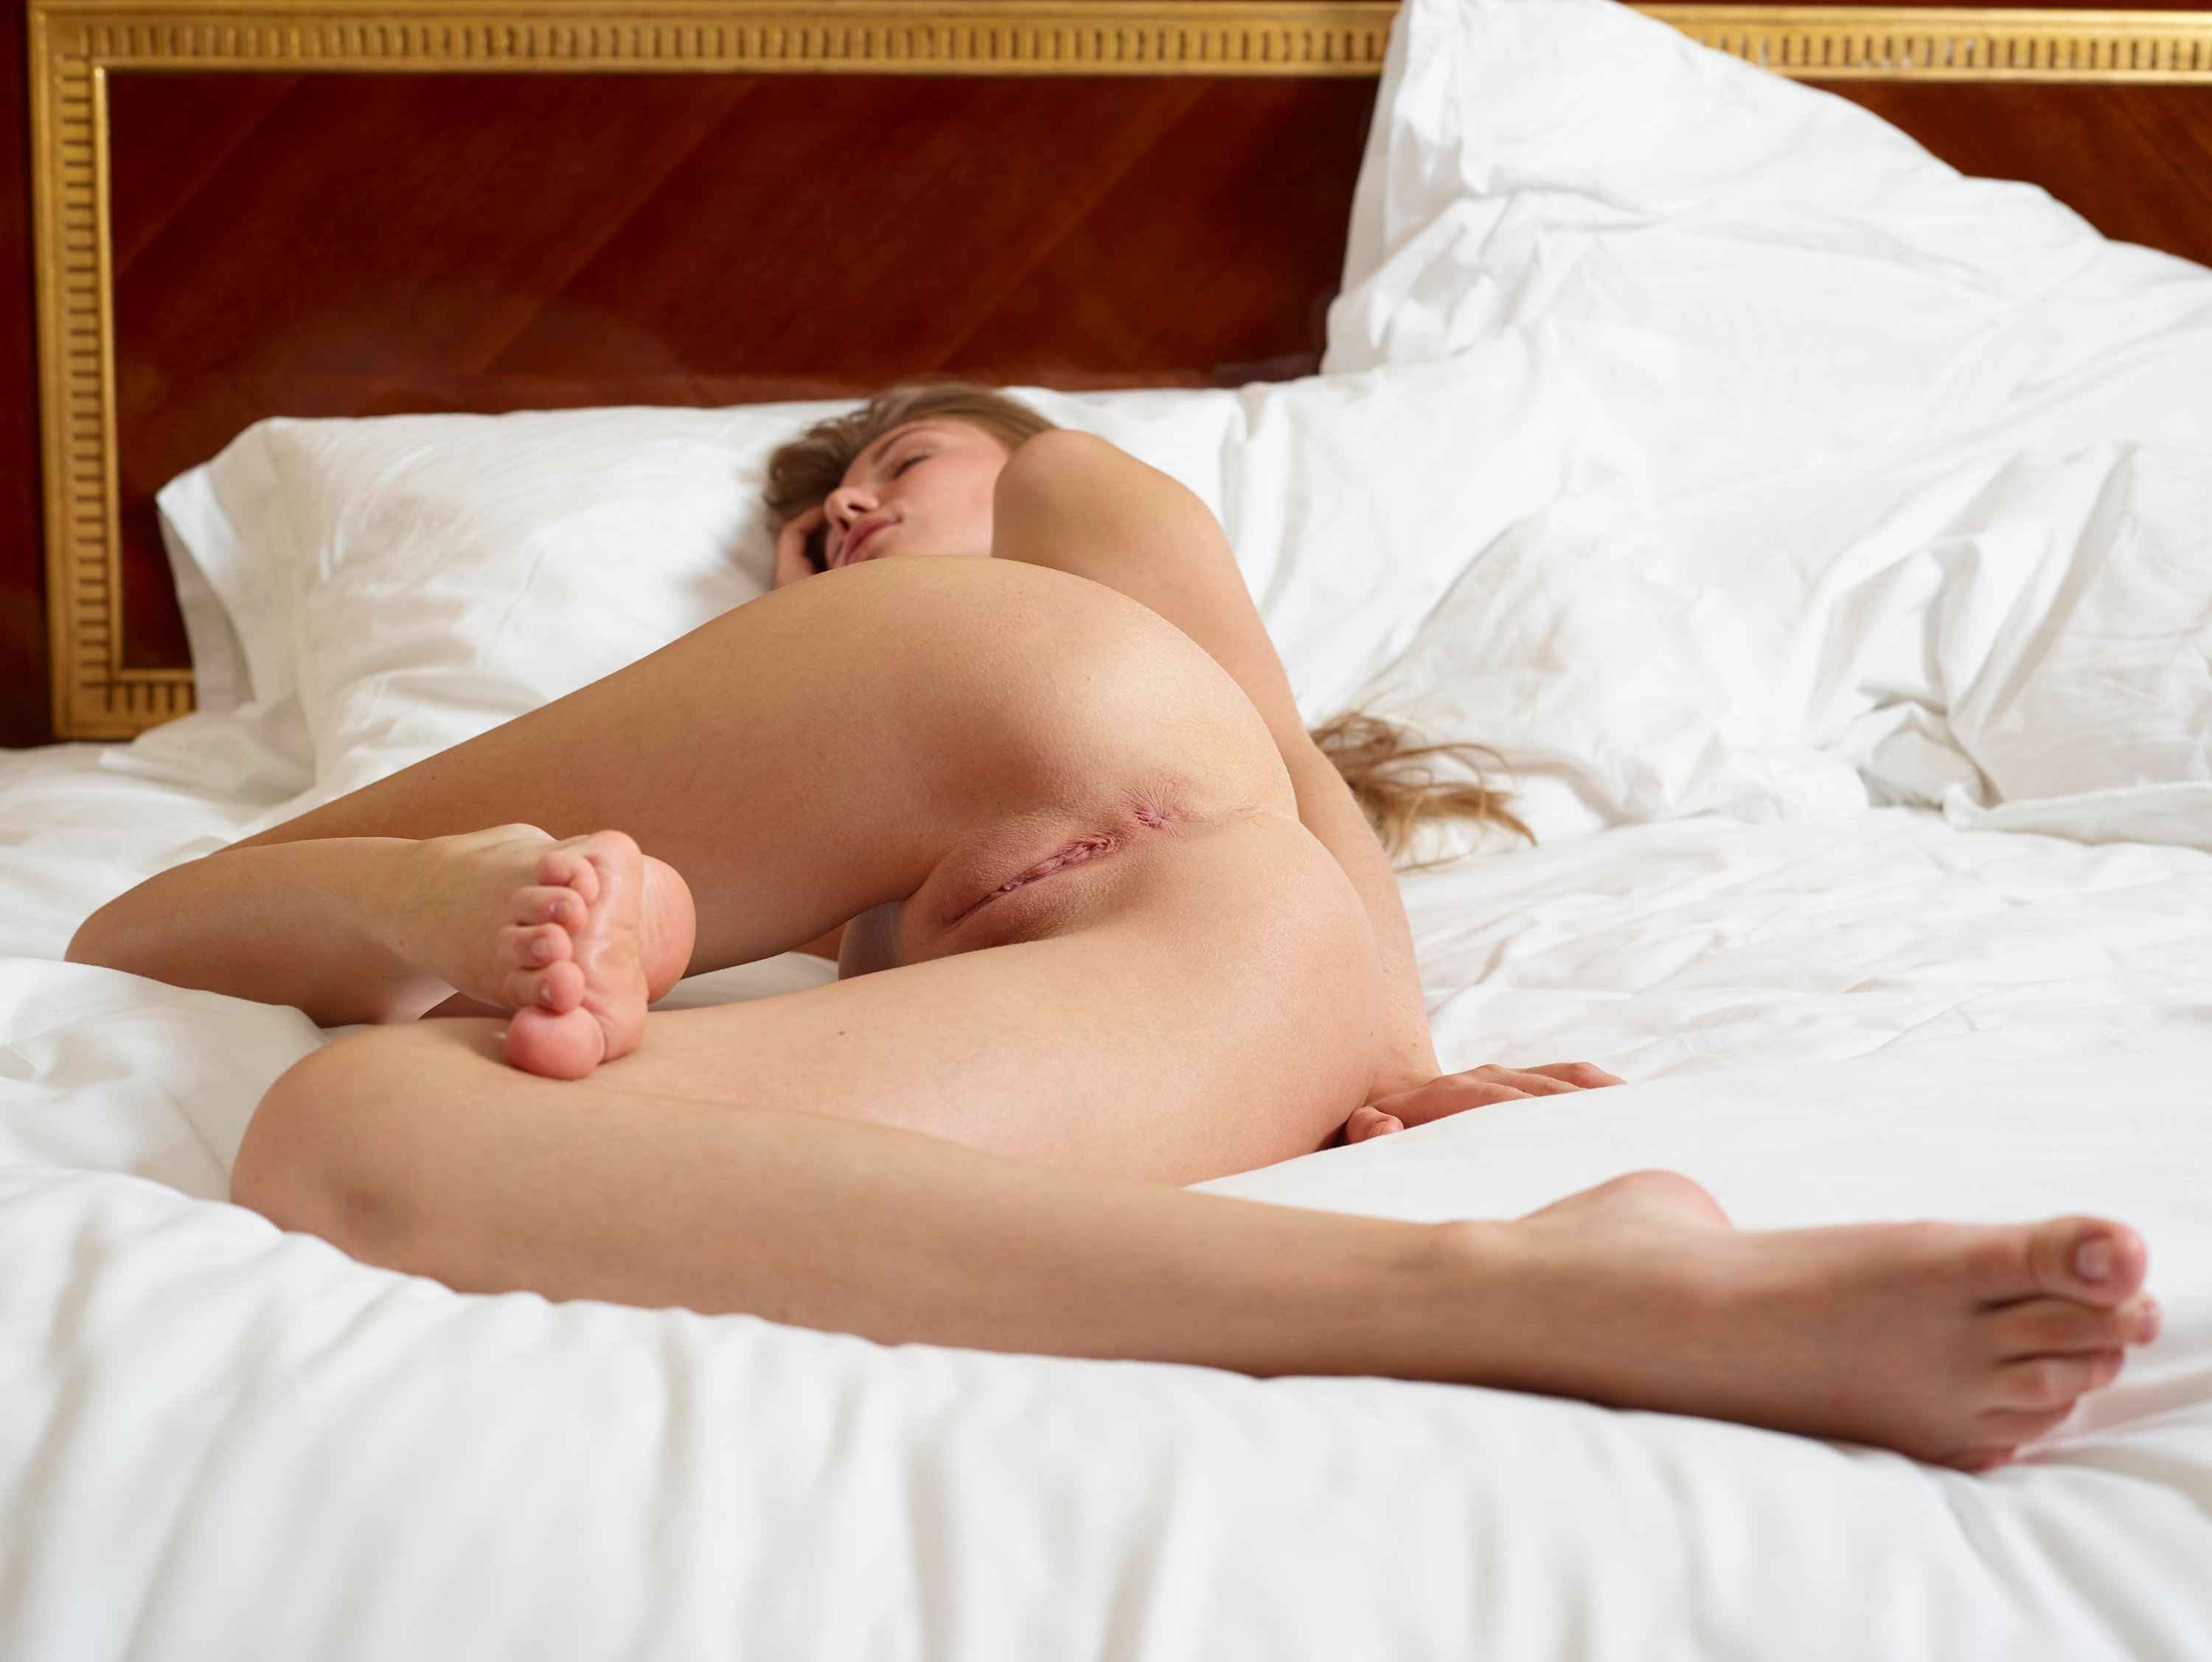 naked woman in sleep